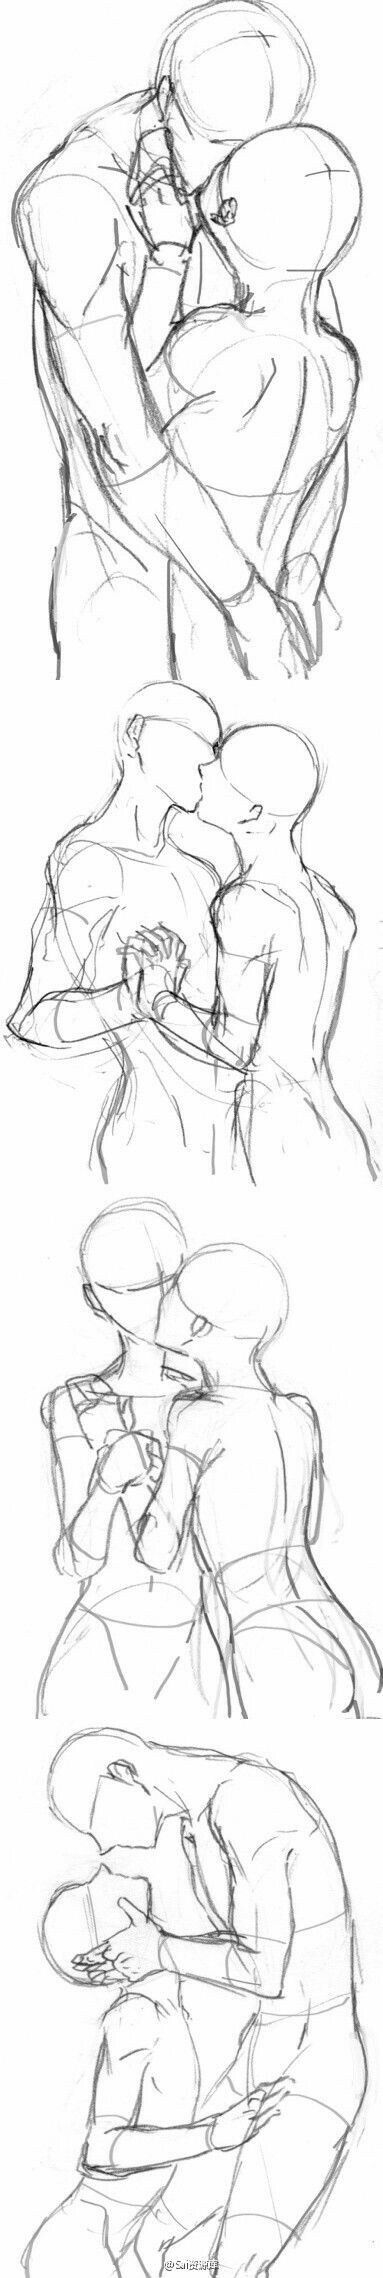 Kissing poses reference